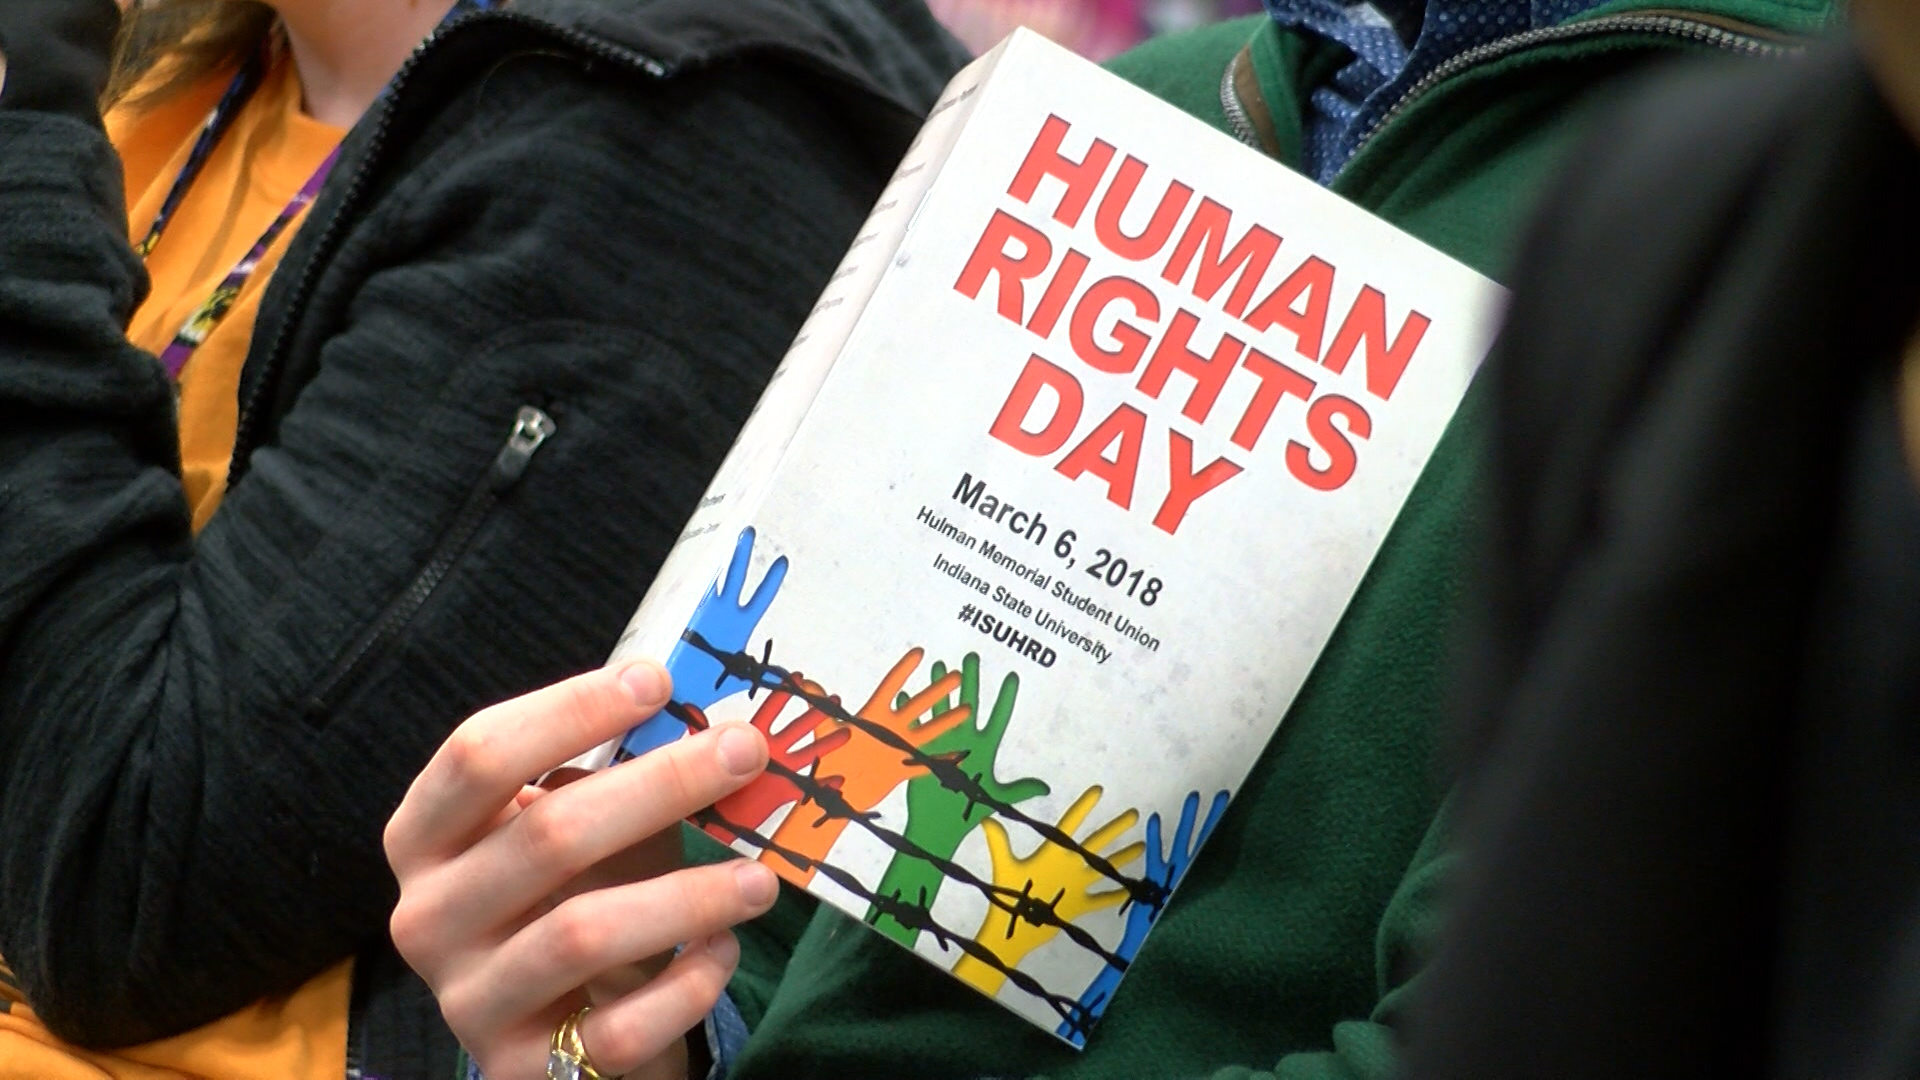 Human Rights Day_1520378360304.jpg.jpg